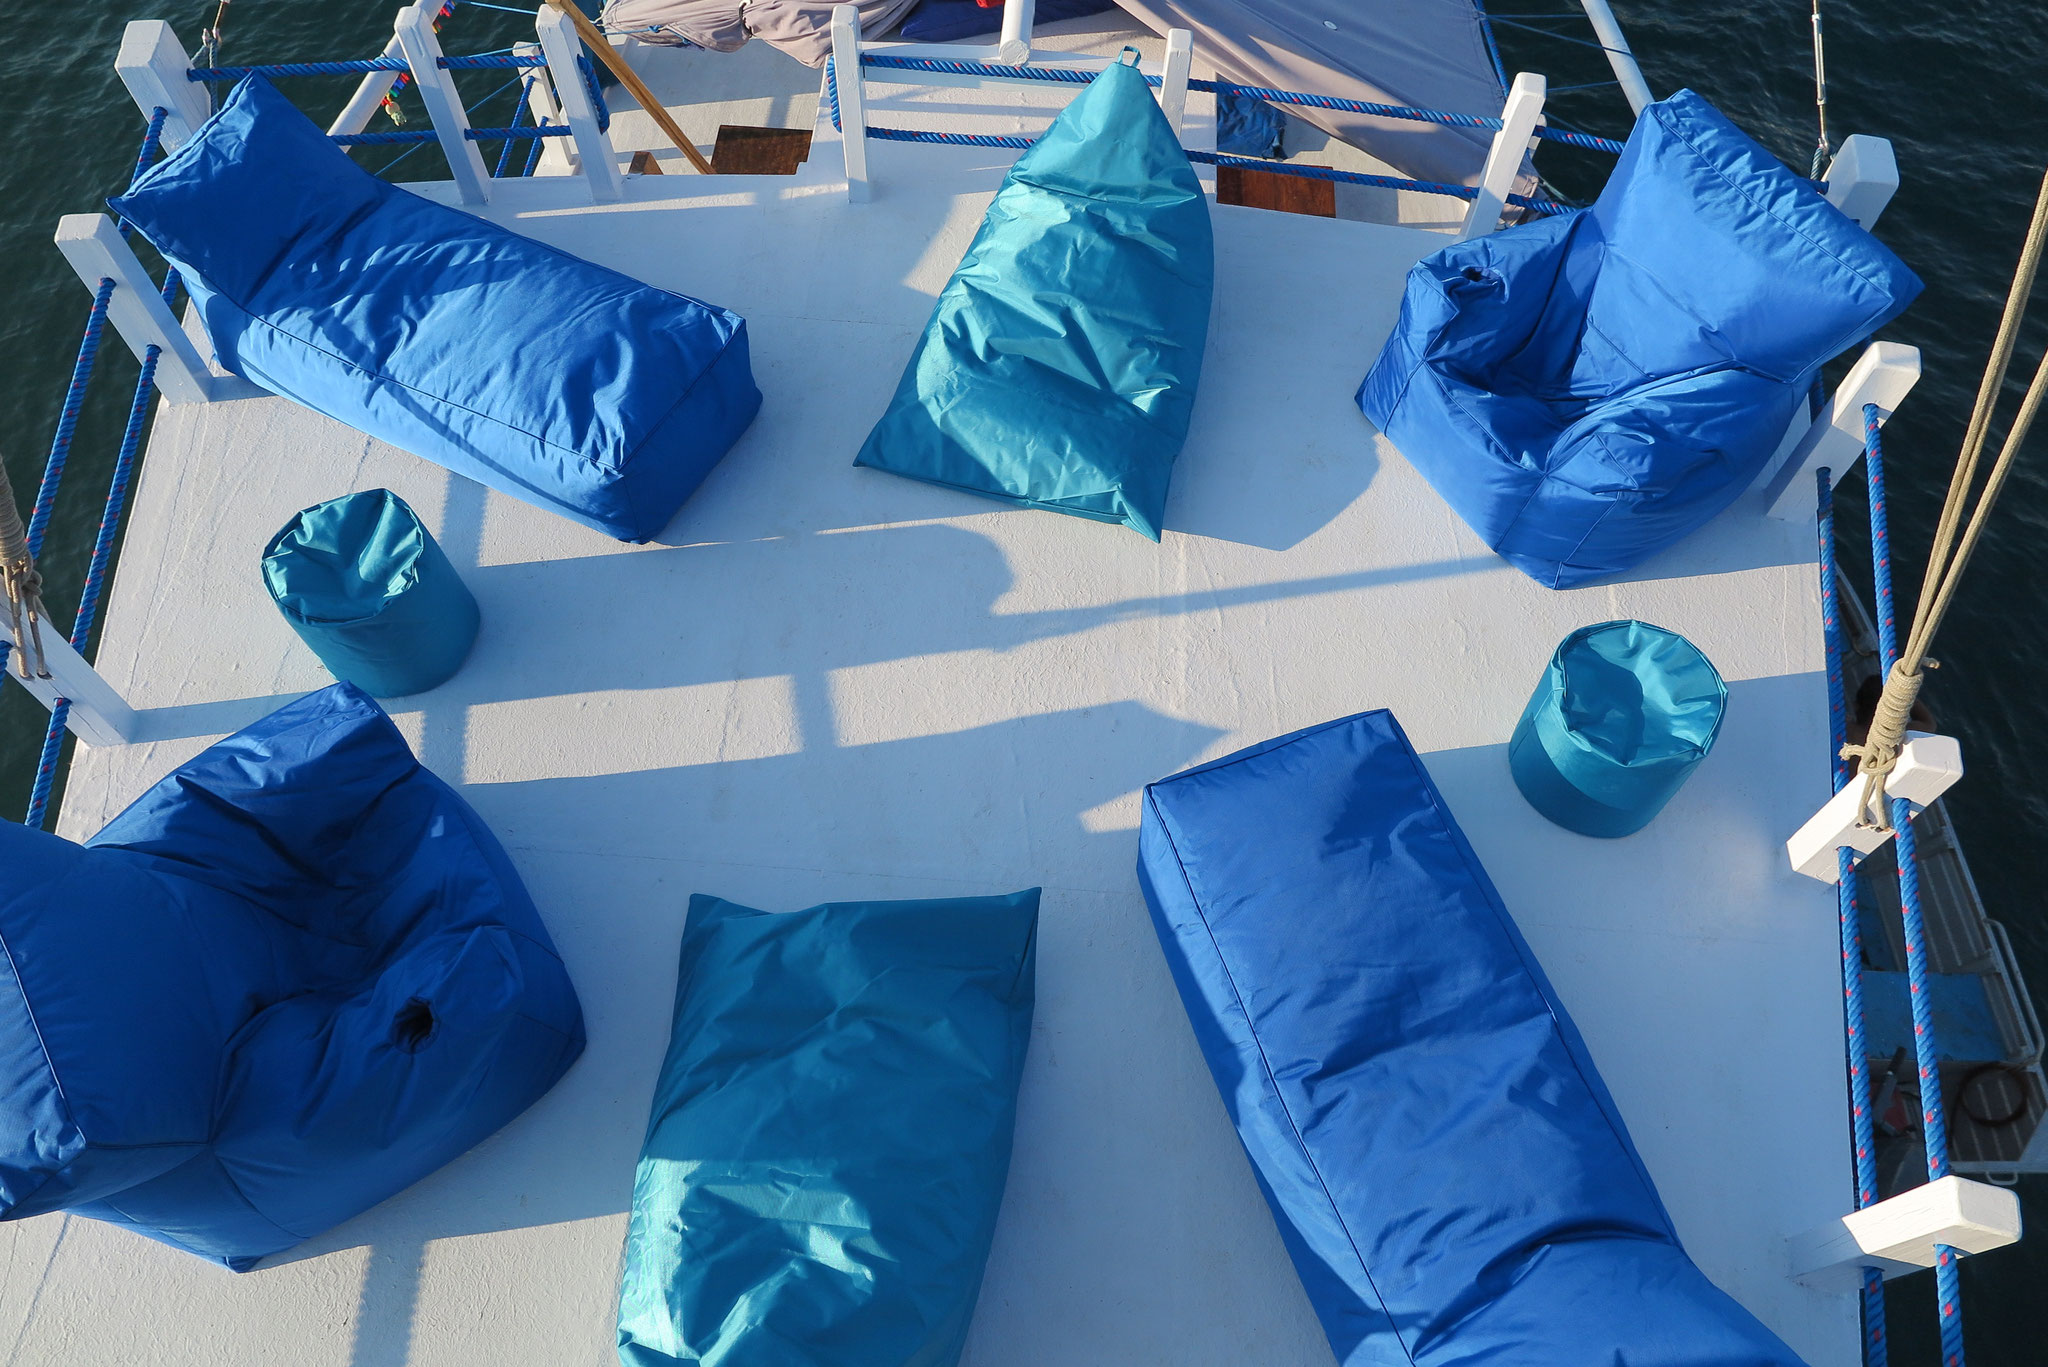 Sundeck and bean bags for a perfect chilling moment on Tidak Apa'Pa